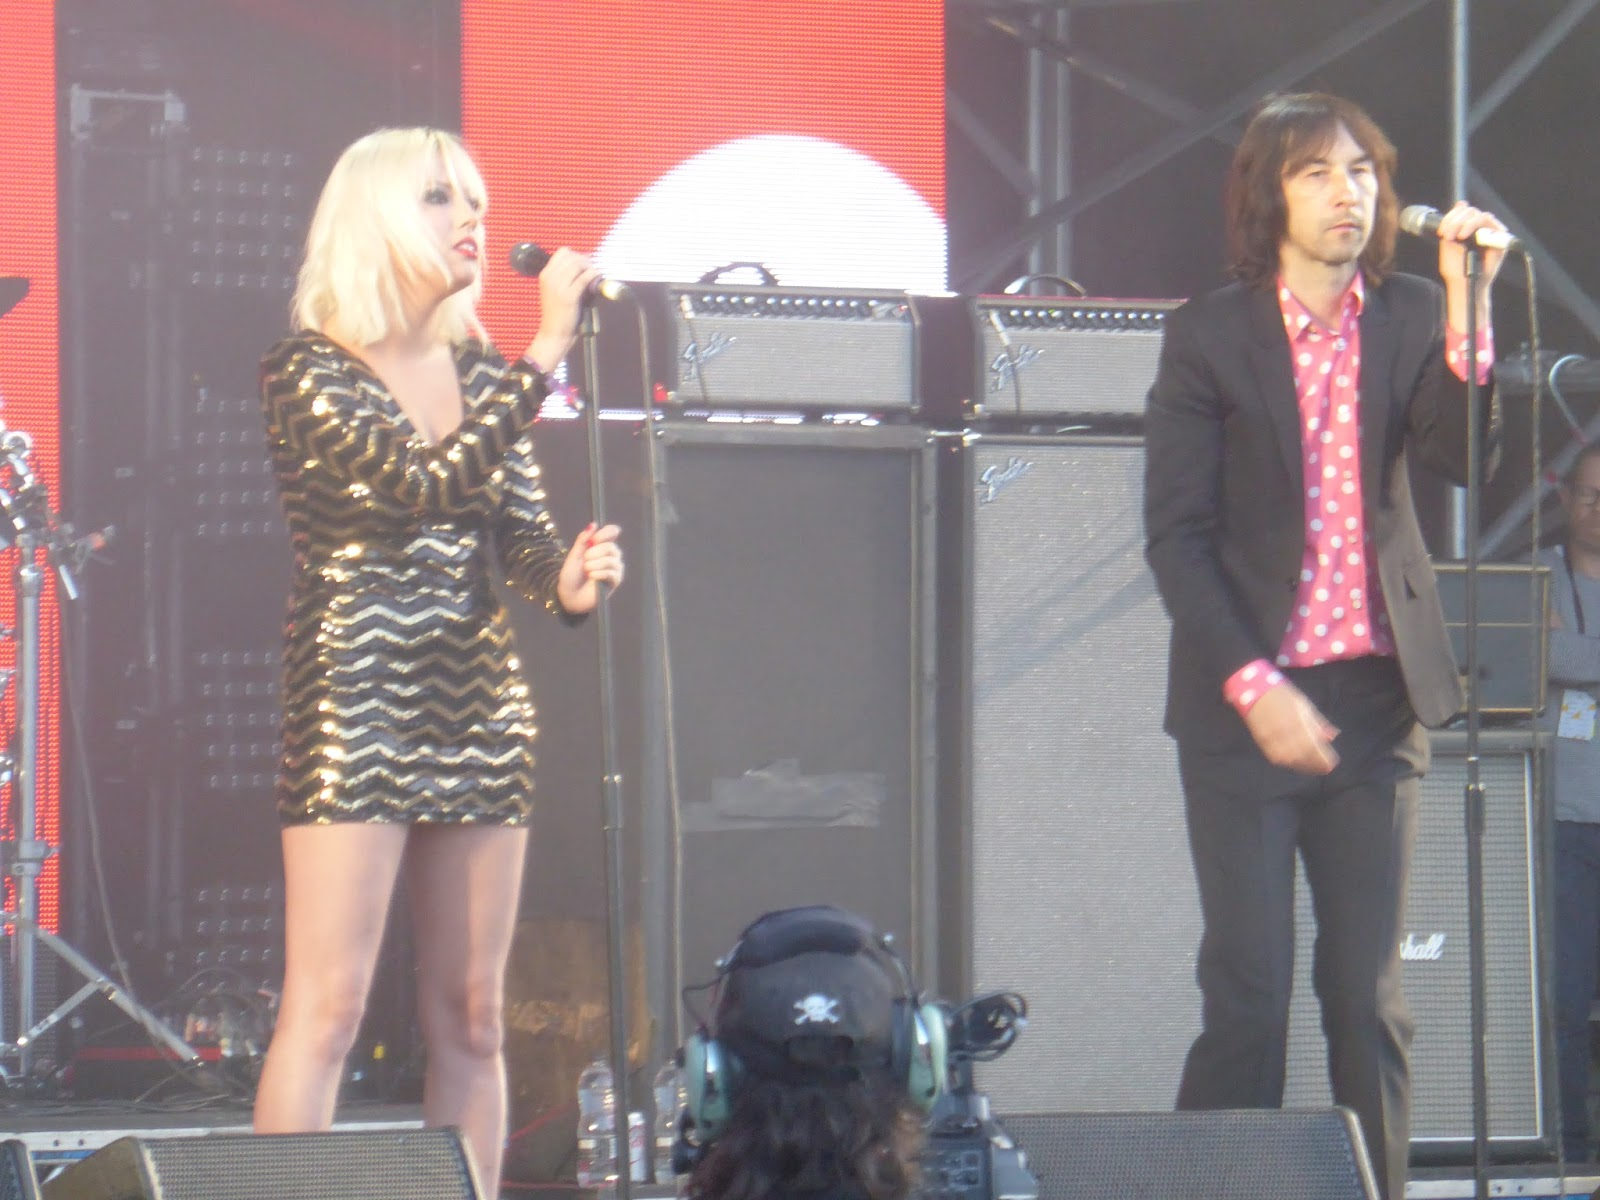 EVEN THE STARS: James / Primal Scream / Wolf Alice - On Roundhay